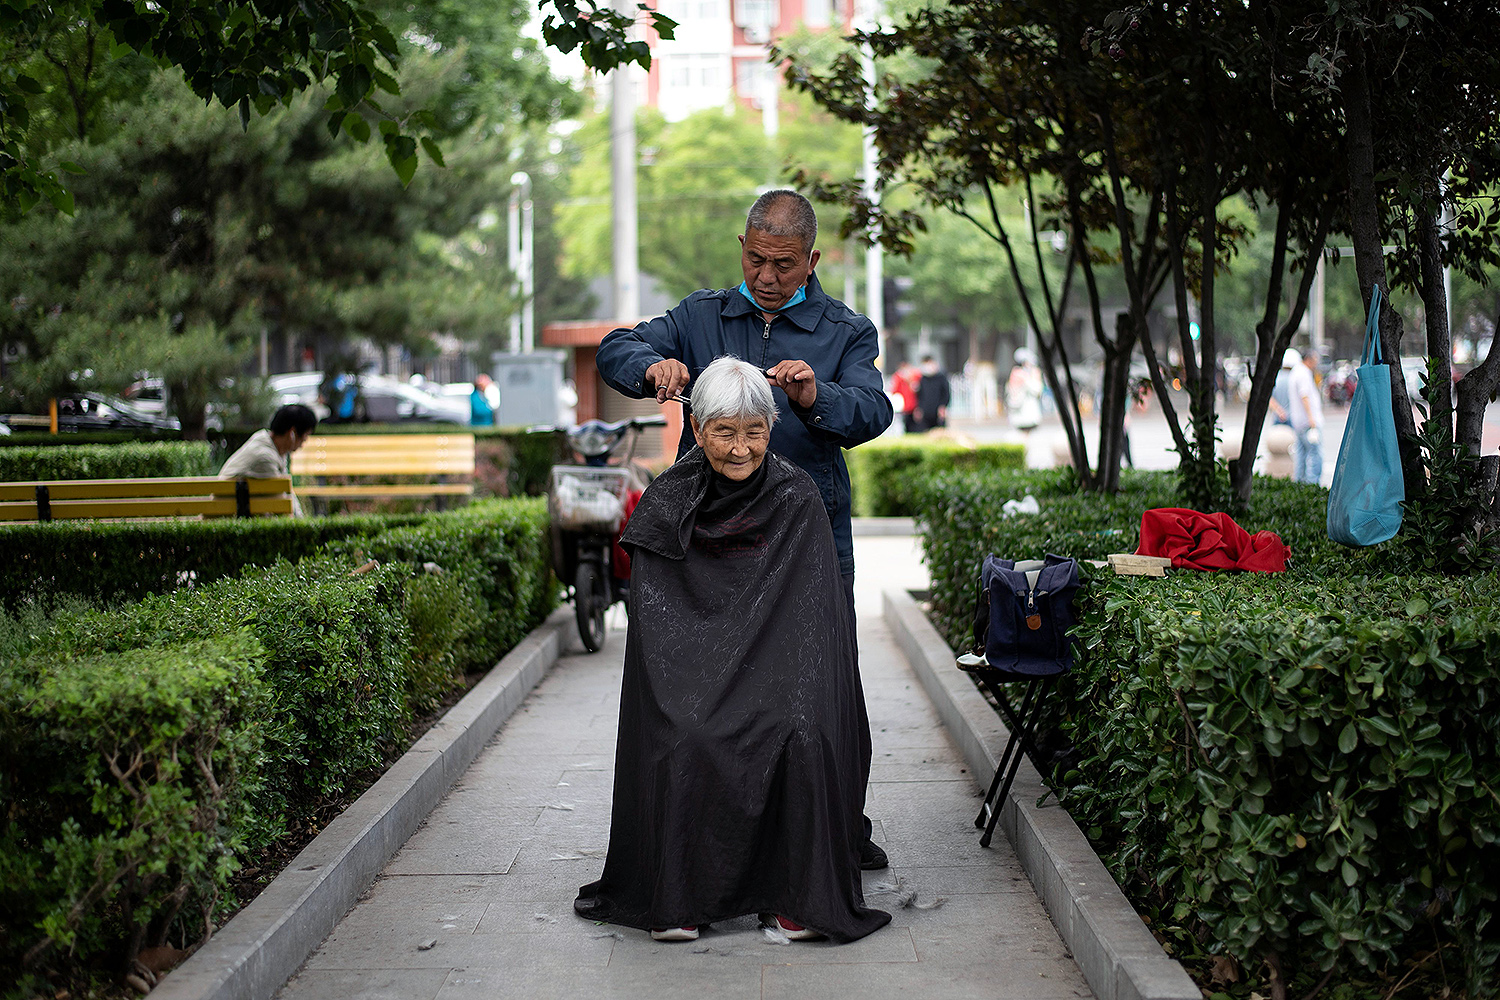 A barber cuts a woman's hair in a public park in Beijing on May 13. NOEL CELIS/AFP via Getty Images